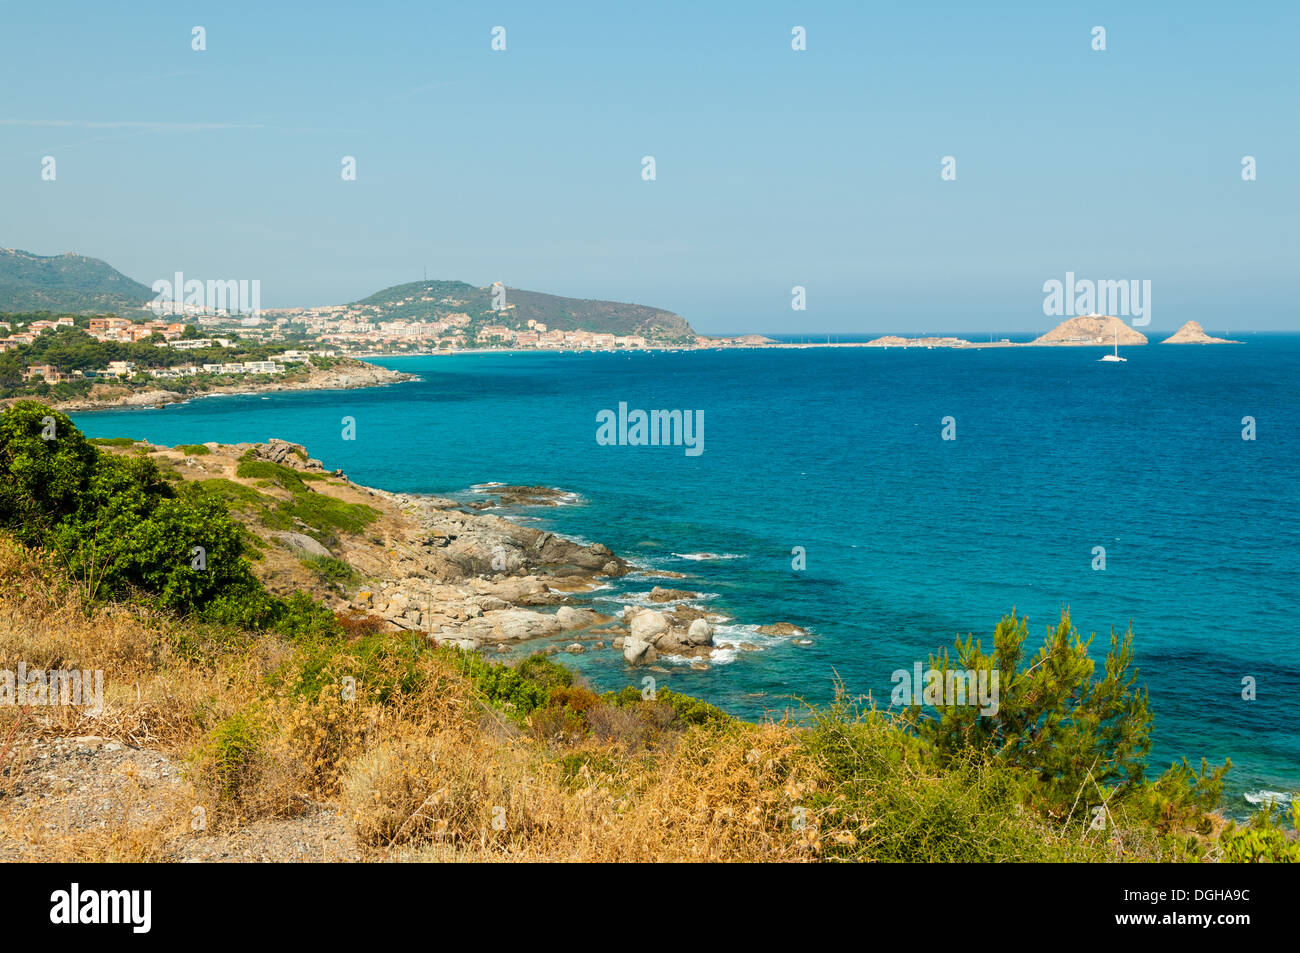 View of Ile Rousse, North Corsica, France - Stock Image